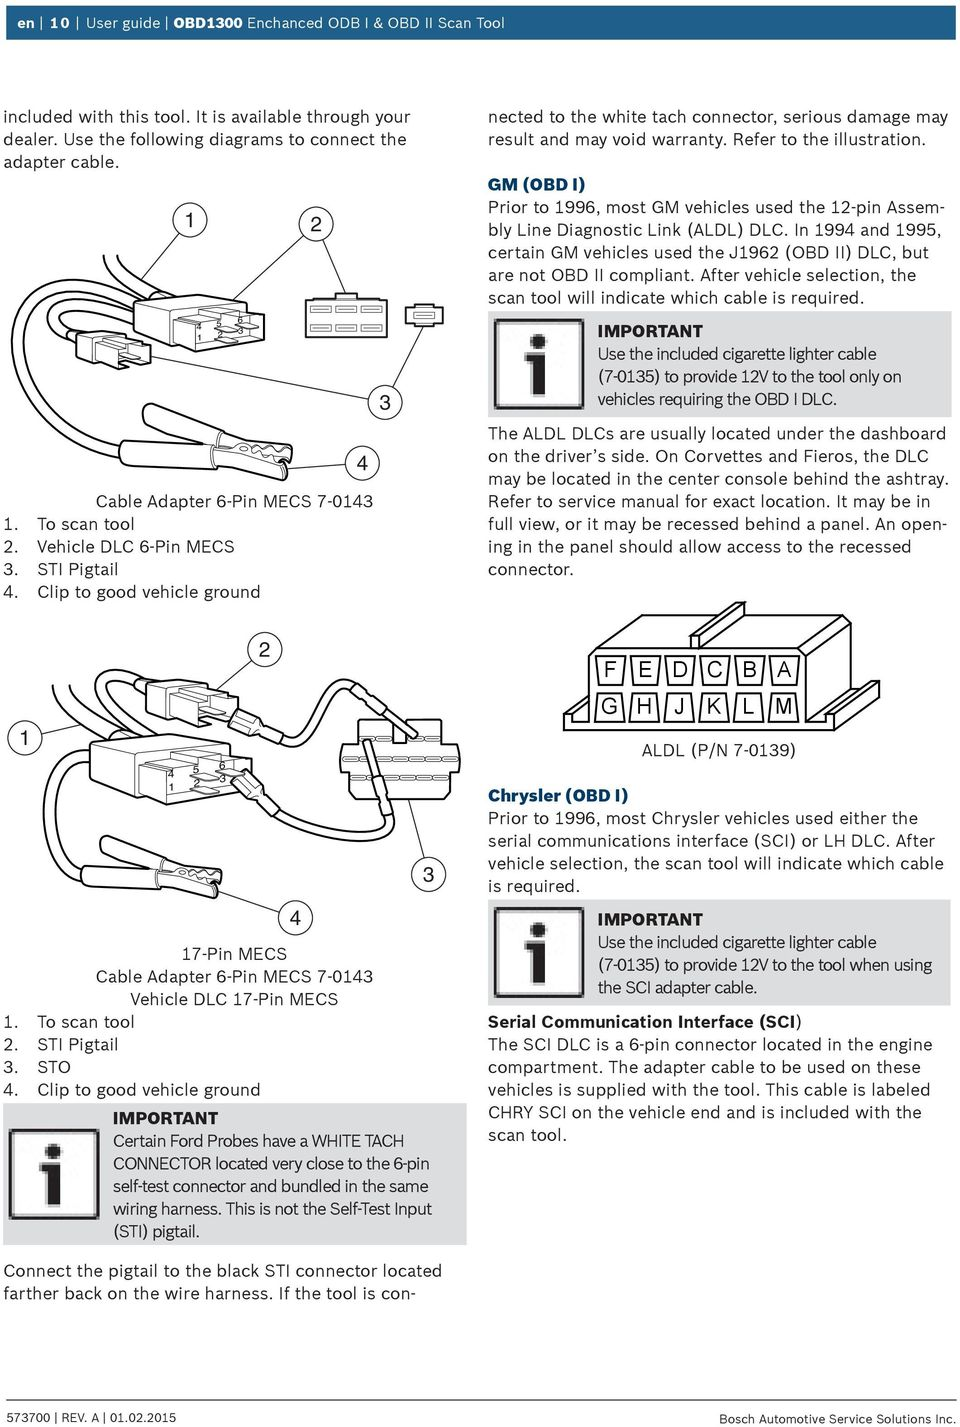 Gm Vehicle Wiring Pigtails If You Have Questions Or Concerns Contact Technical Support Pdf Clip To Good Ground 4 3 Connect The Pigtail Black Sti Connector Located